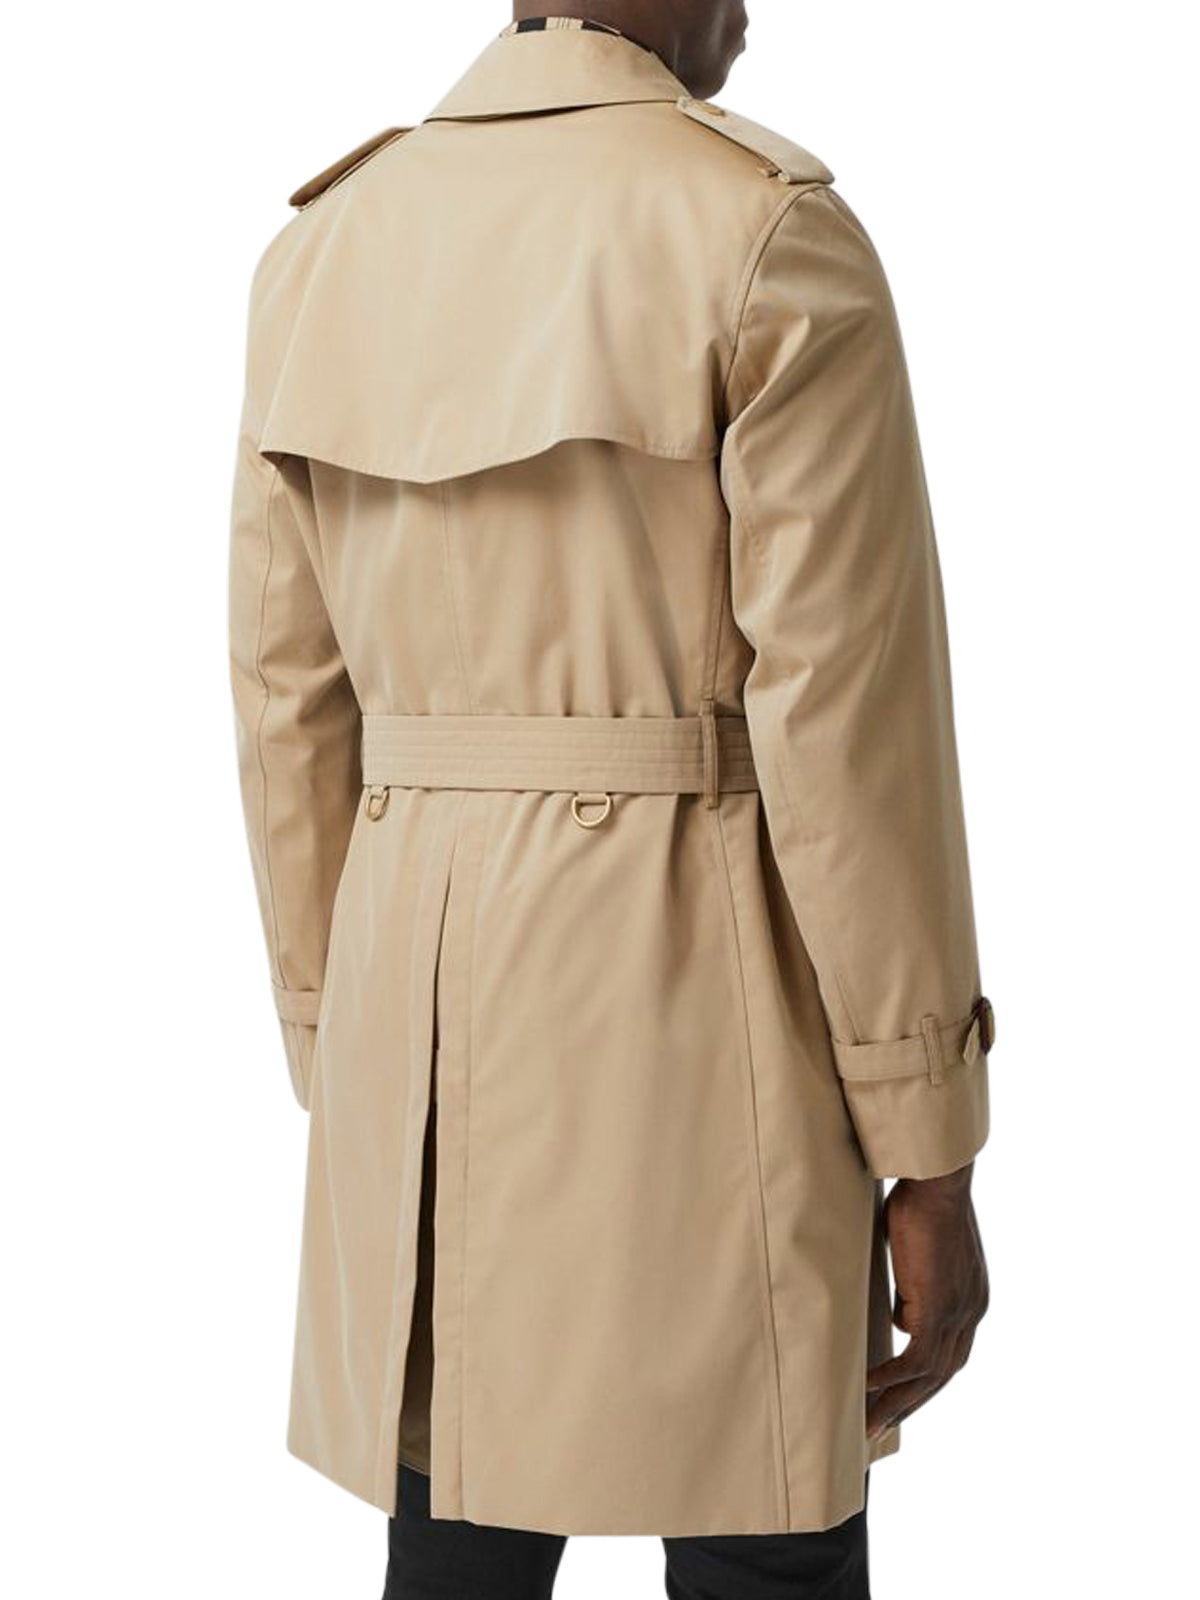 The Mid-length Chelsea Heritage Trench Coat